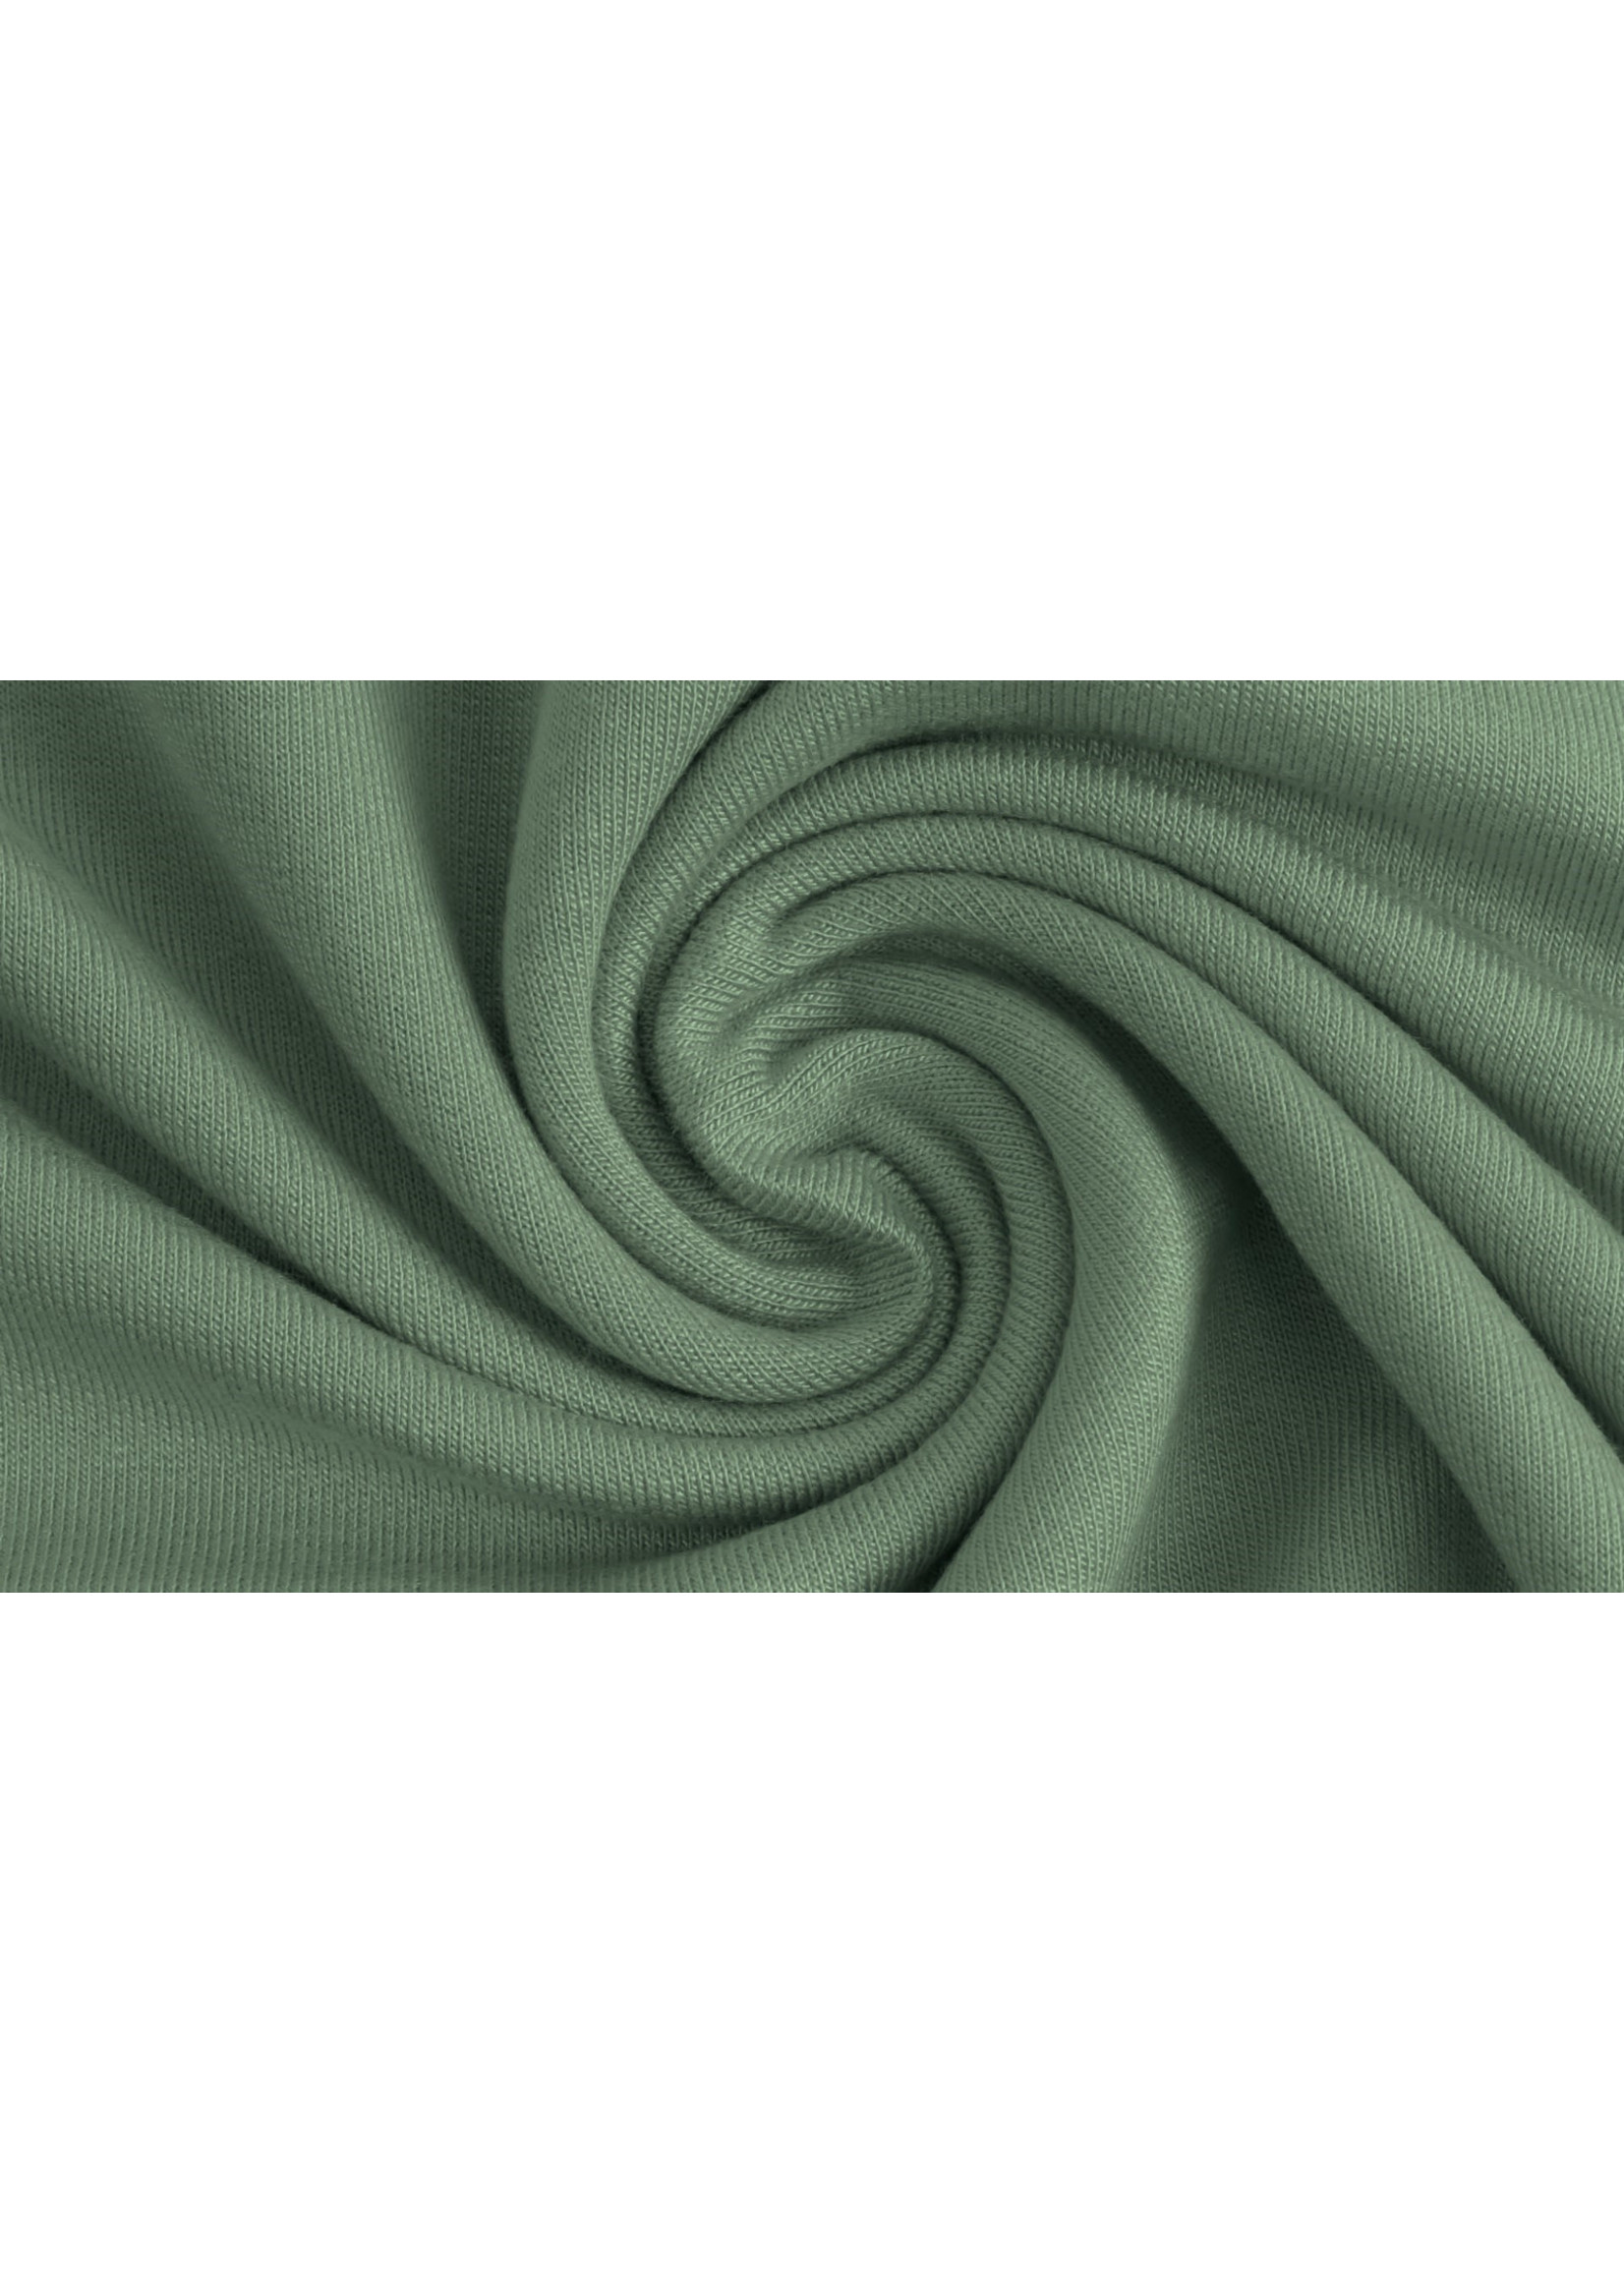 Modal Soft Jersey - Old Green